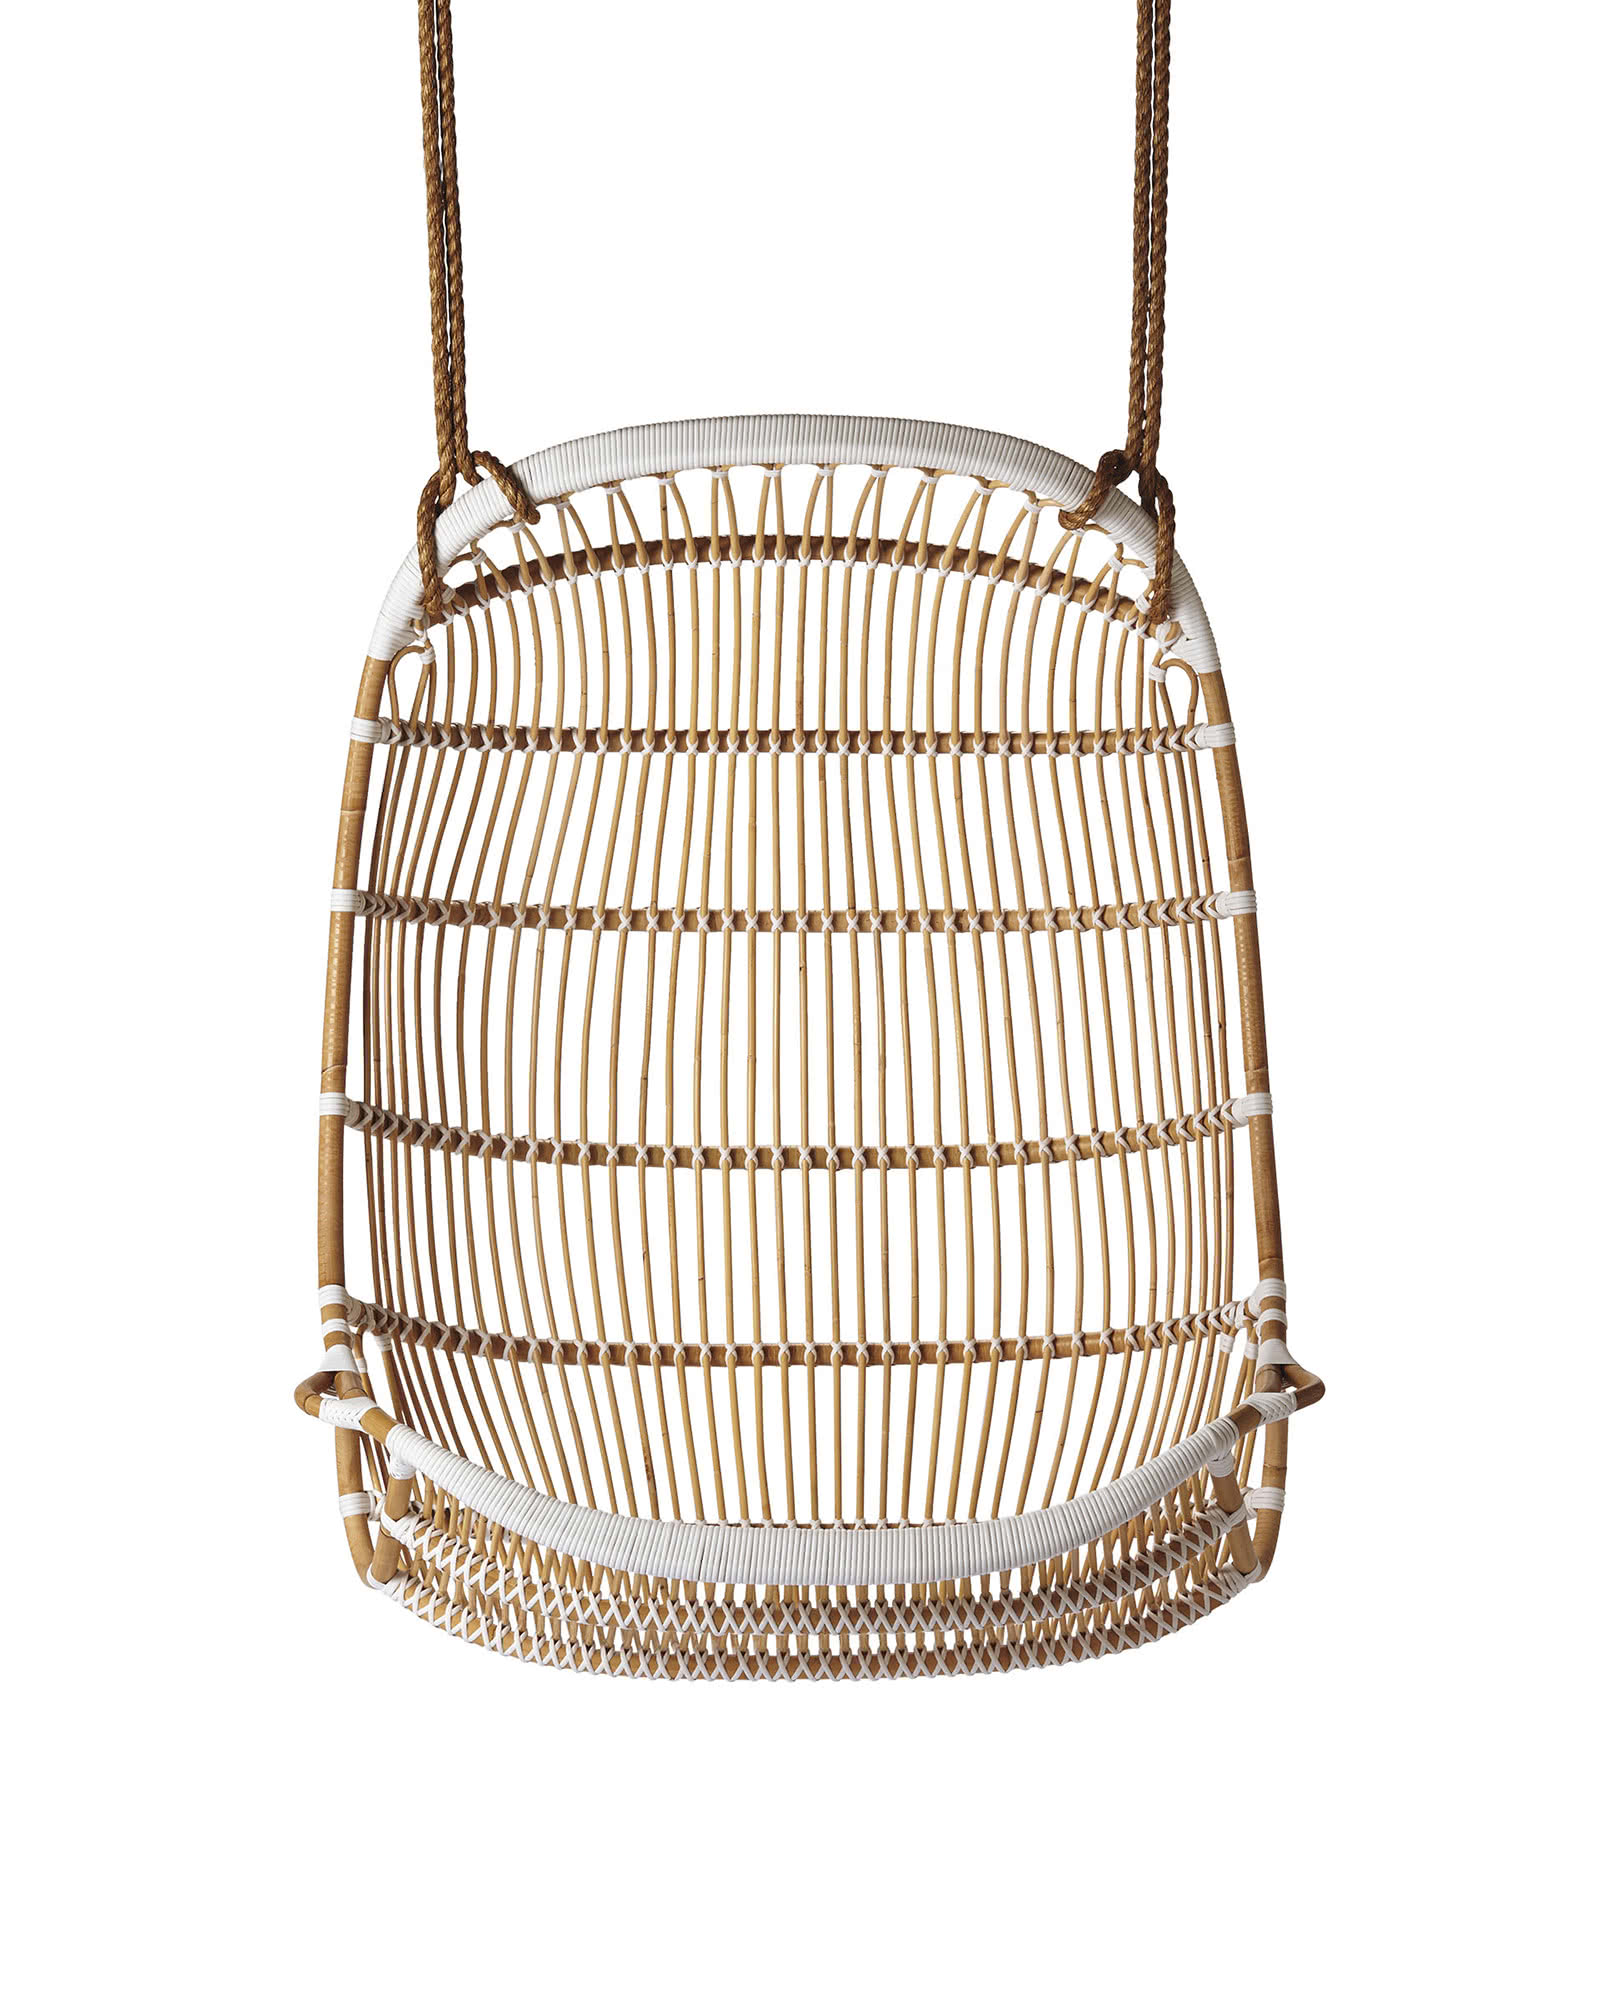 scandinavian design chair covers camp reviews double hanging rattan - chairs | serena and lily